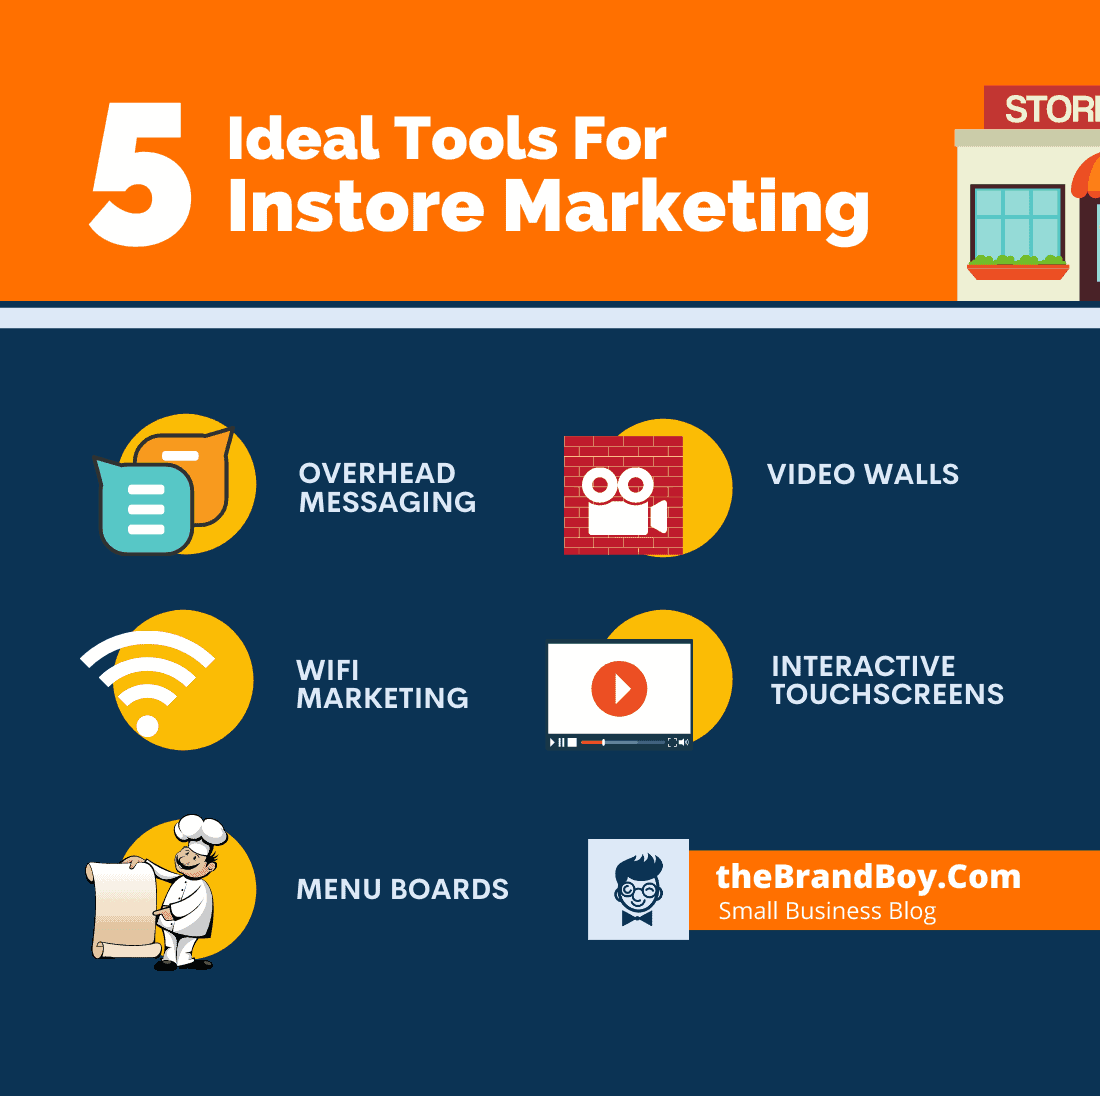 tools for in-store marketing